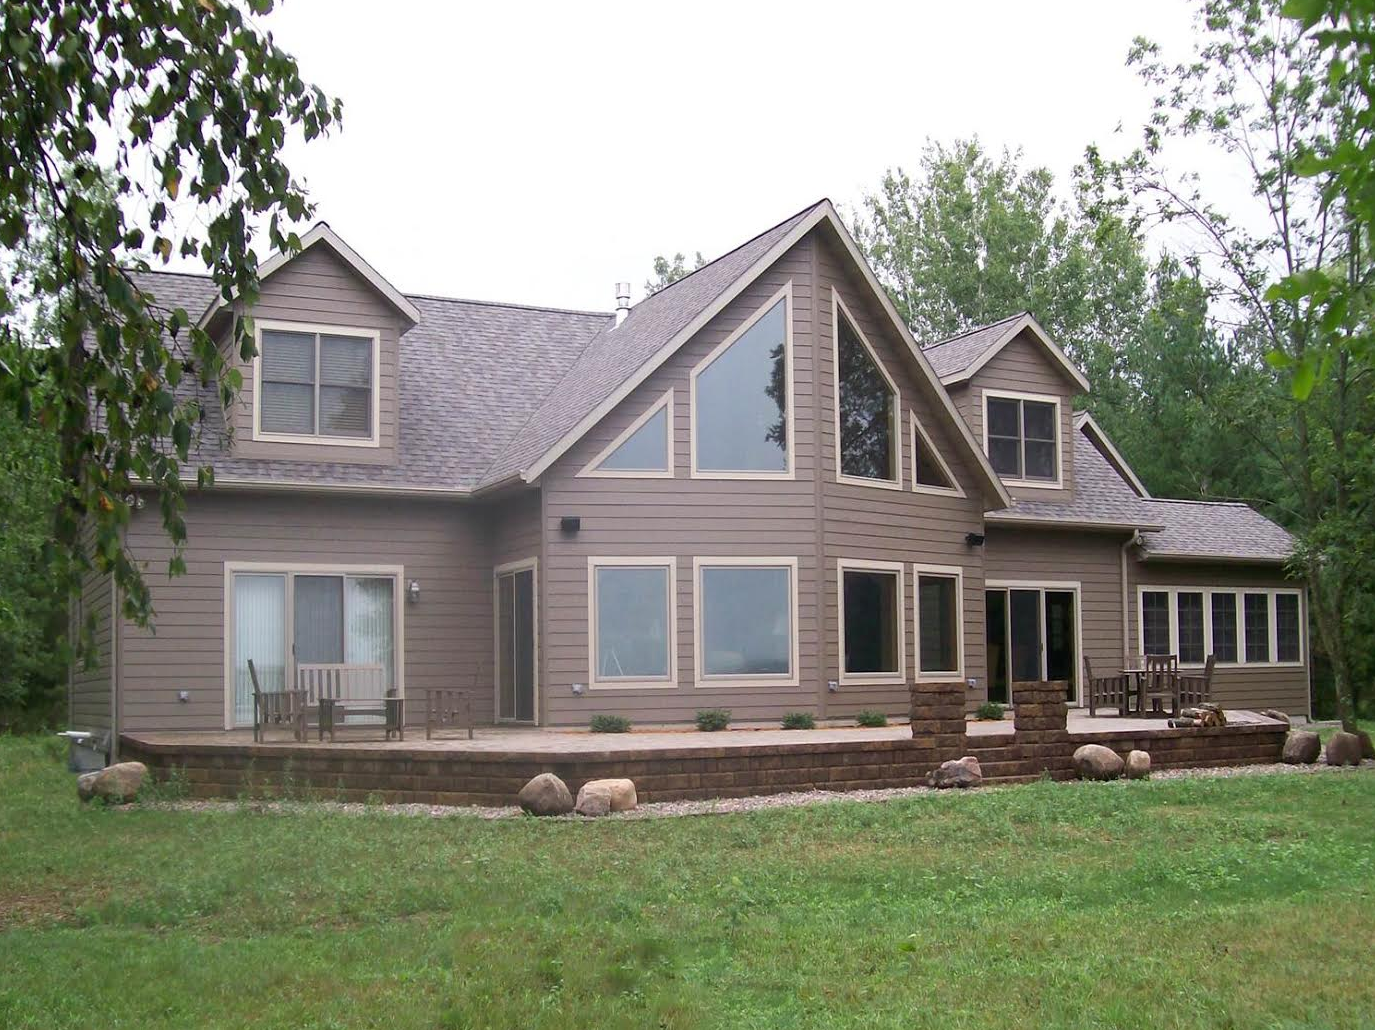 Custom Chalet Style Modular Home With Gorgeous Windows And Patio To Enjoy The Views Alpine Villa Floor Pla Modular Home Builders Modular Homes Stratford Homes